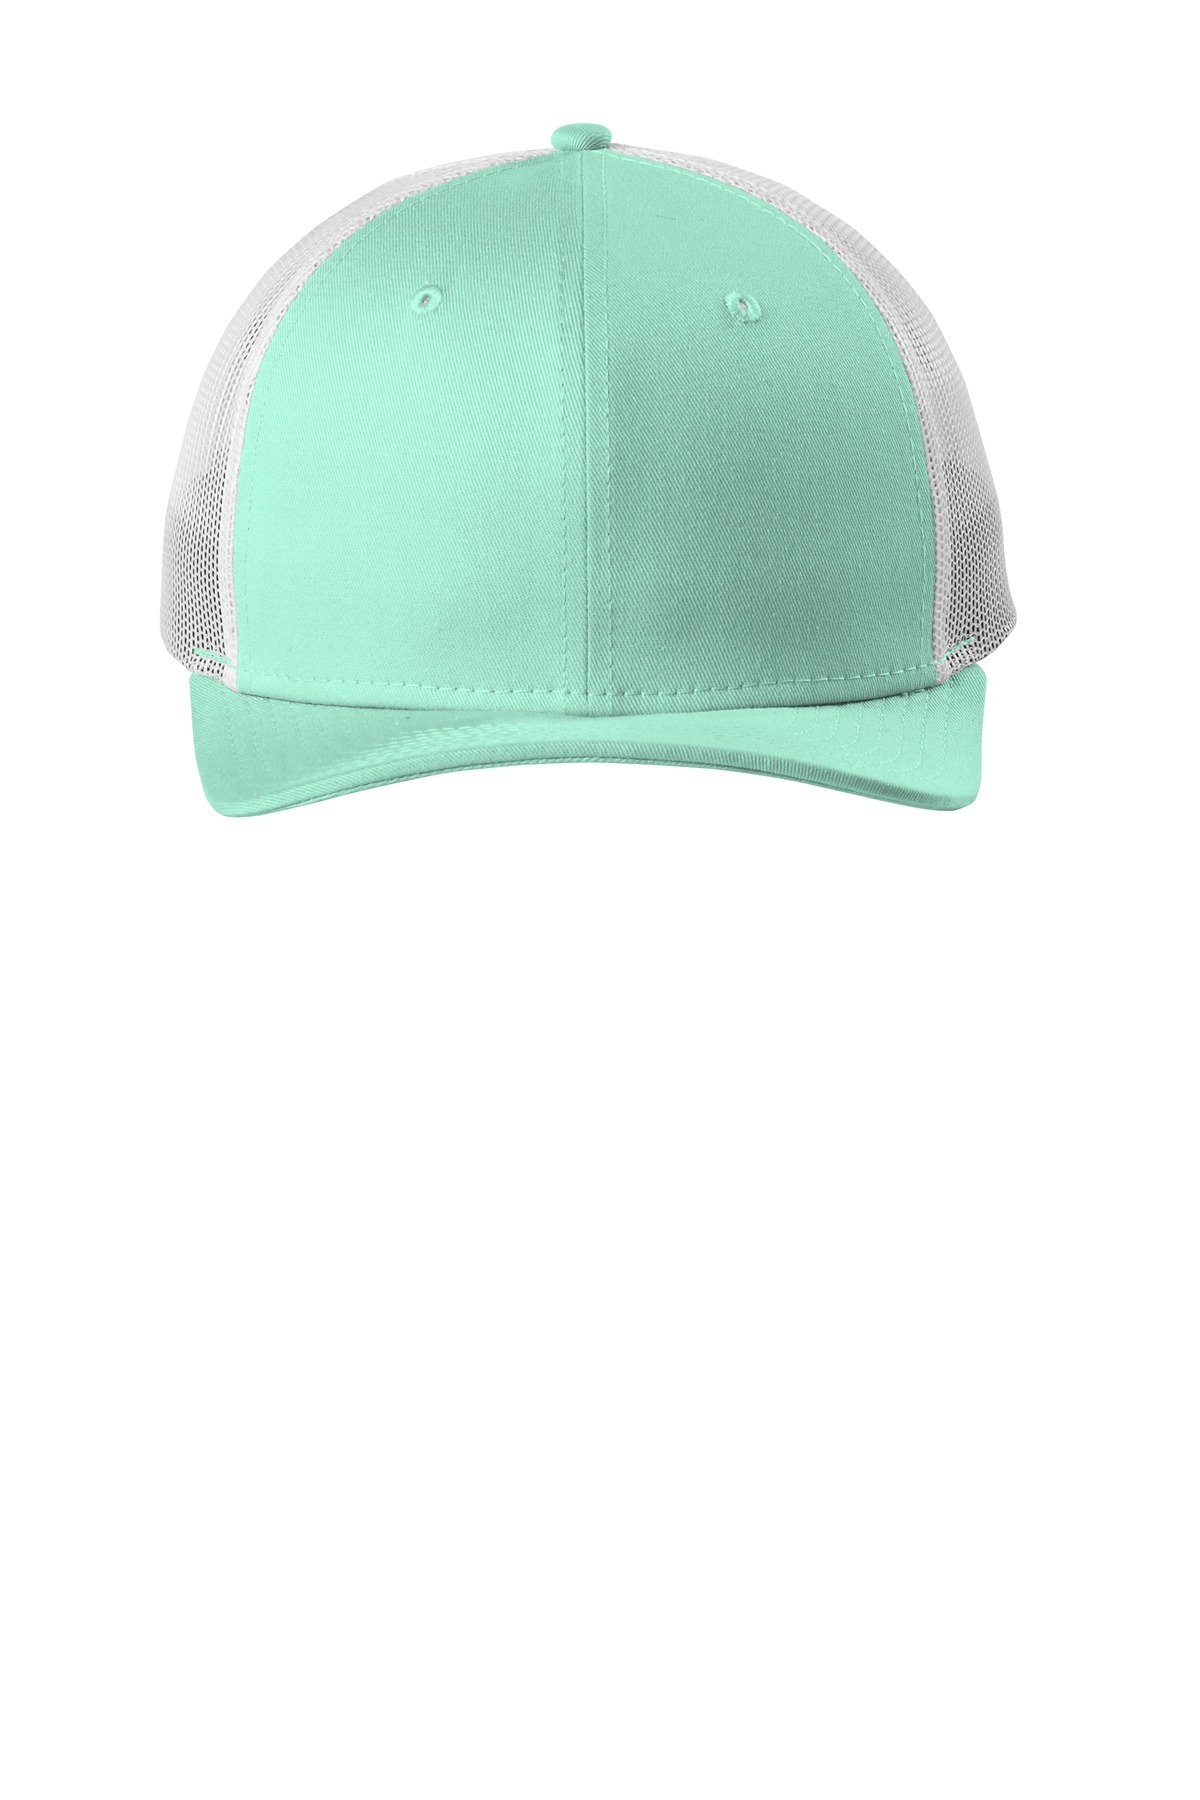 New Era  ®   Snapback Low Profile Trucker Cap   NE207 - Mint/ White